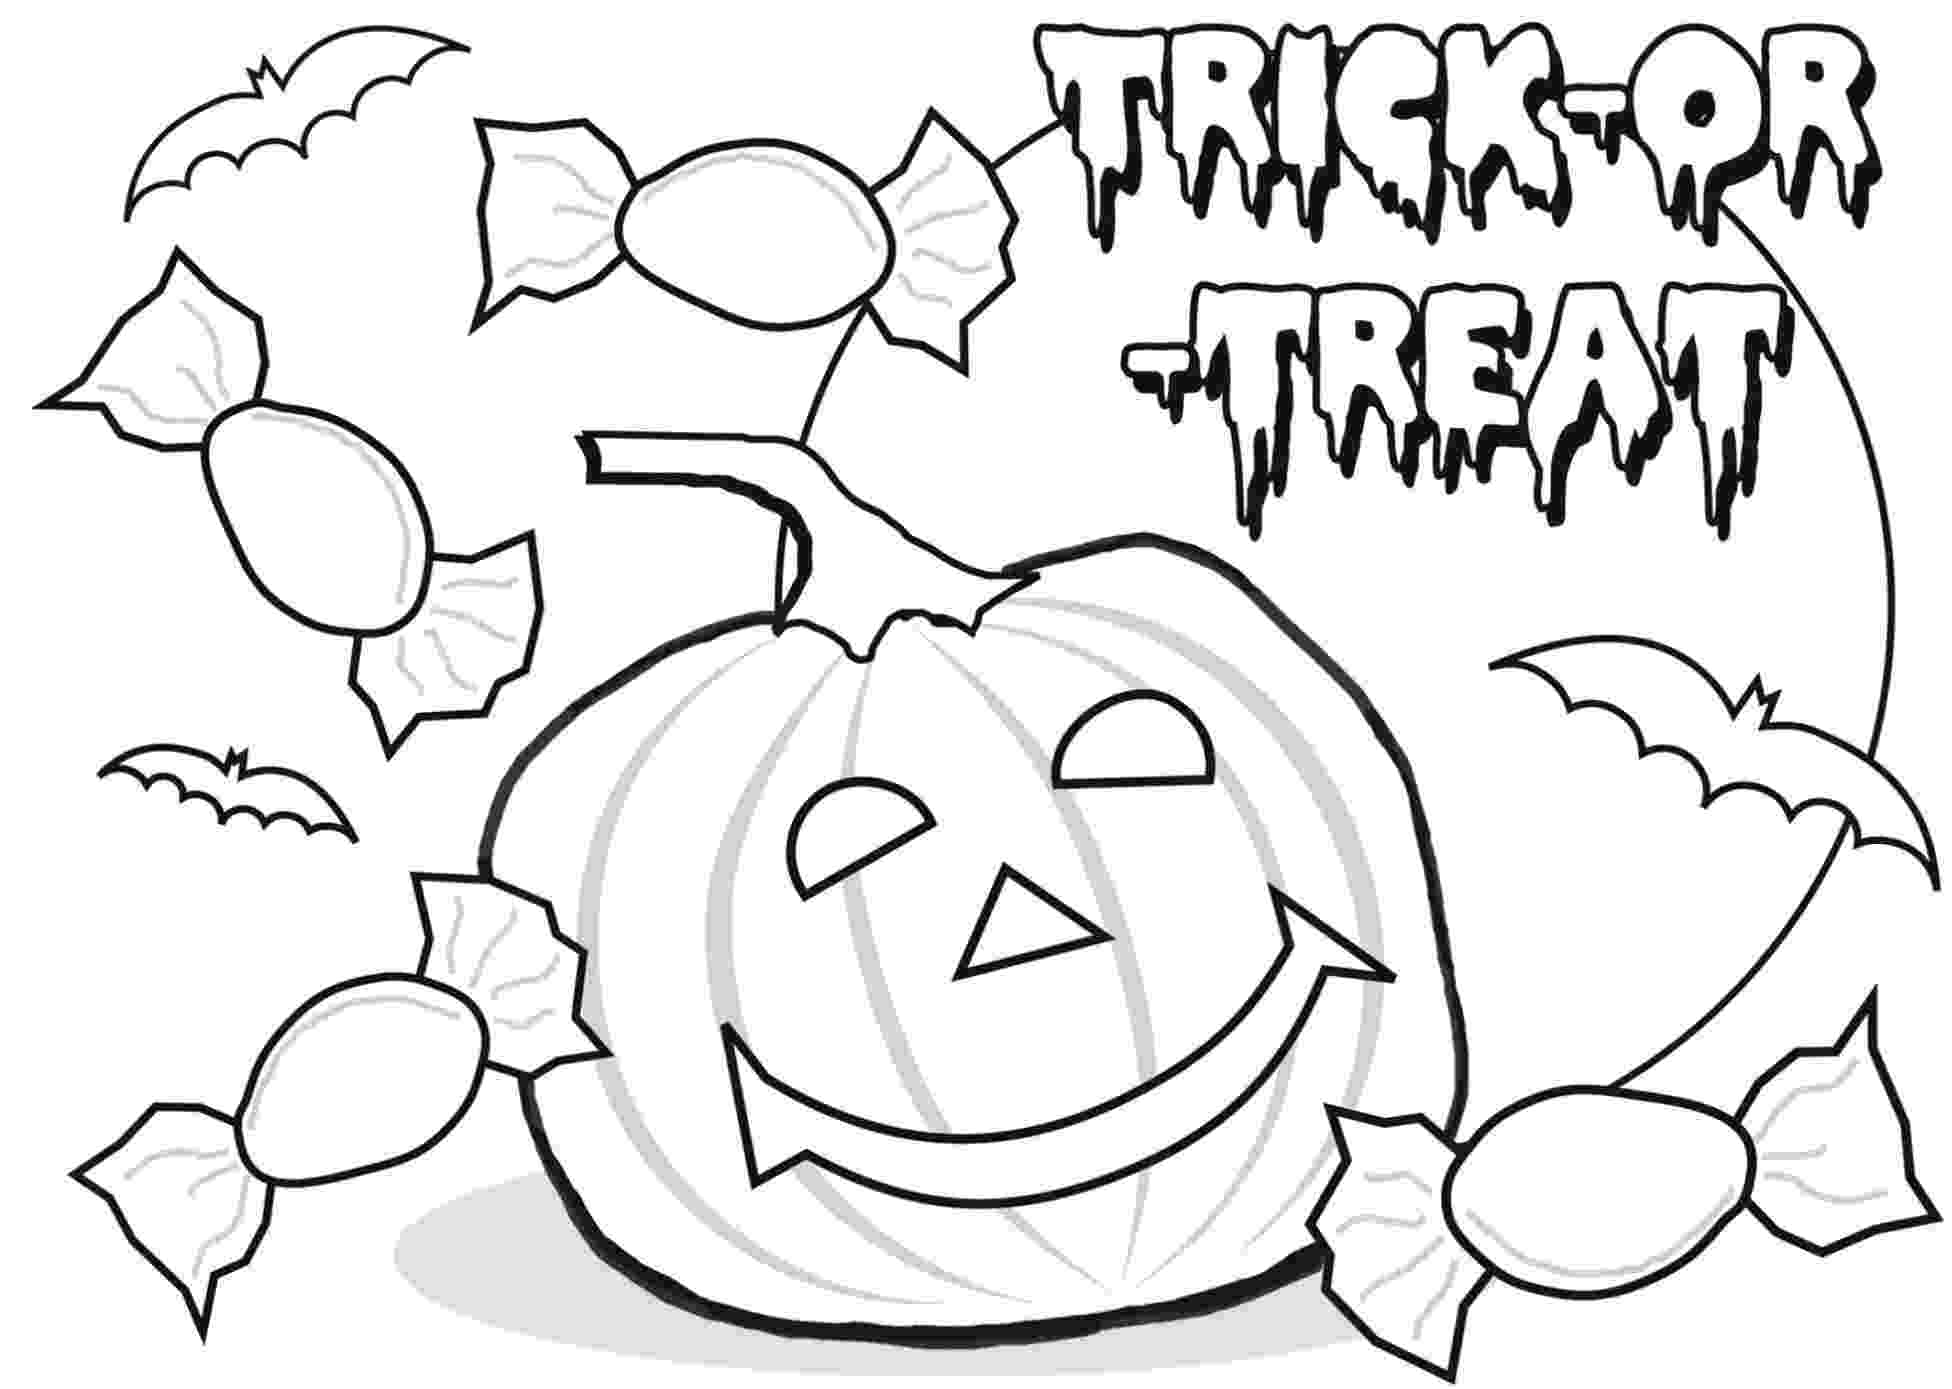 trick or treat coloring pages halloween colorings or pages coloring trick treat